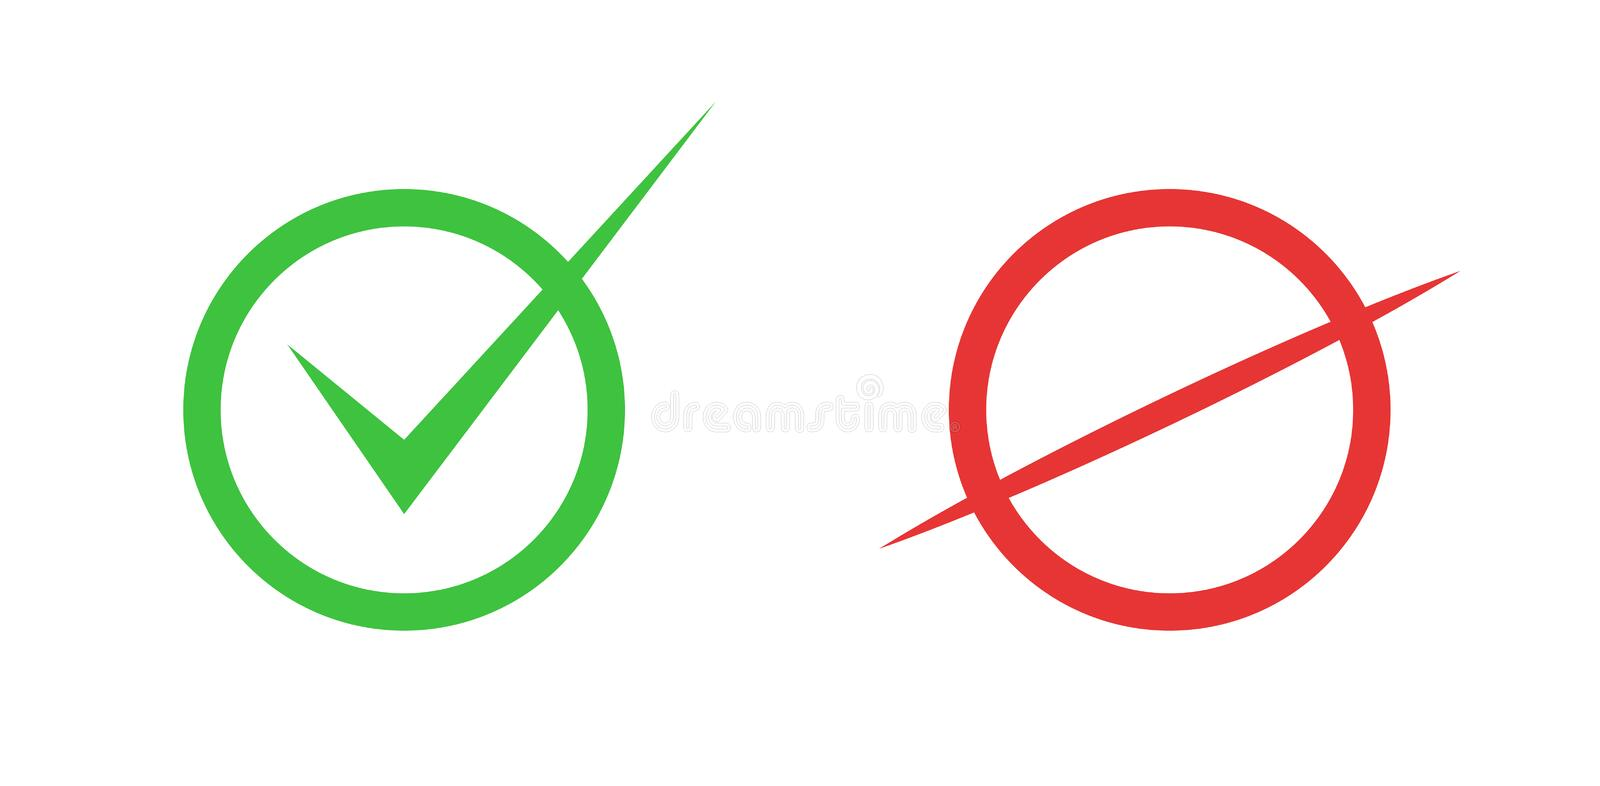 Correct and incorrect icons. True and false signs. Vector. True and false signs. Correct and incorrect icons stock illustration